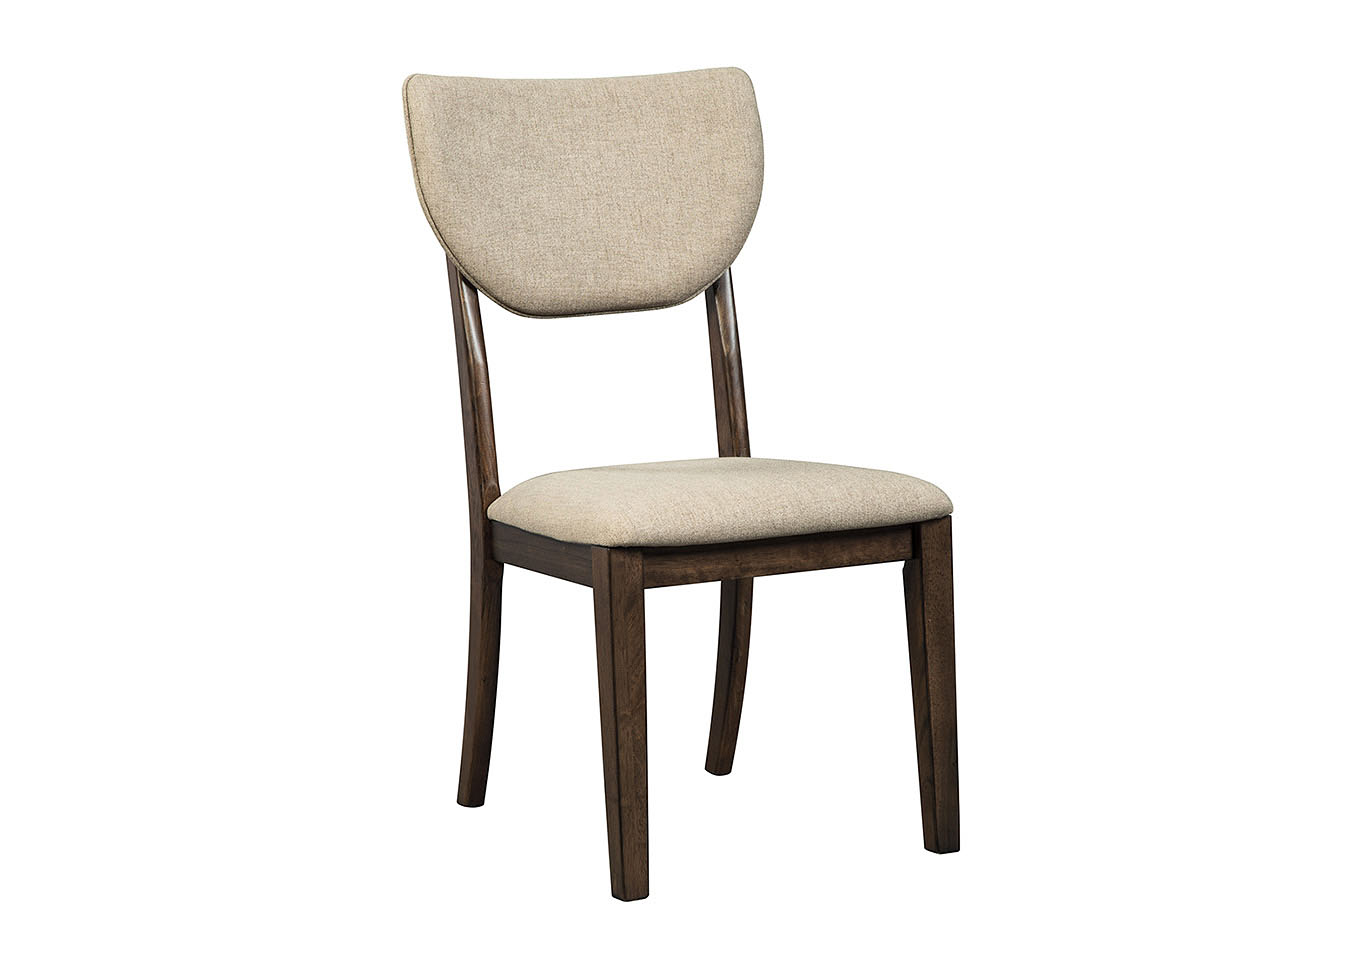 Charmant 2 Joshton Dark Brown Upholstered Dining Chairs,48 Hour Quick Ship